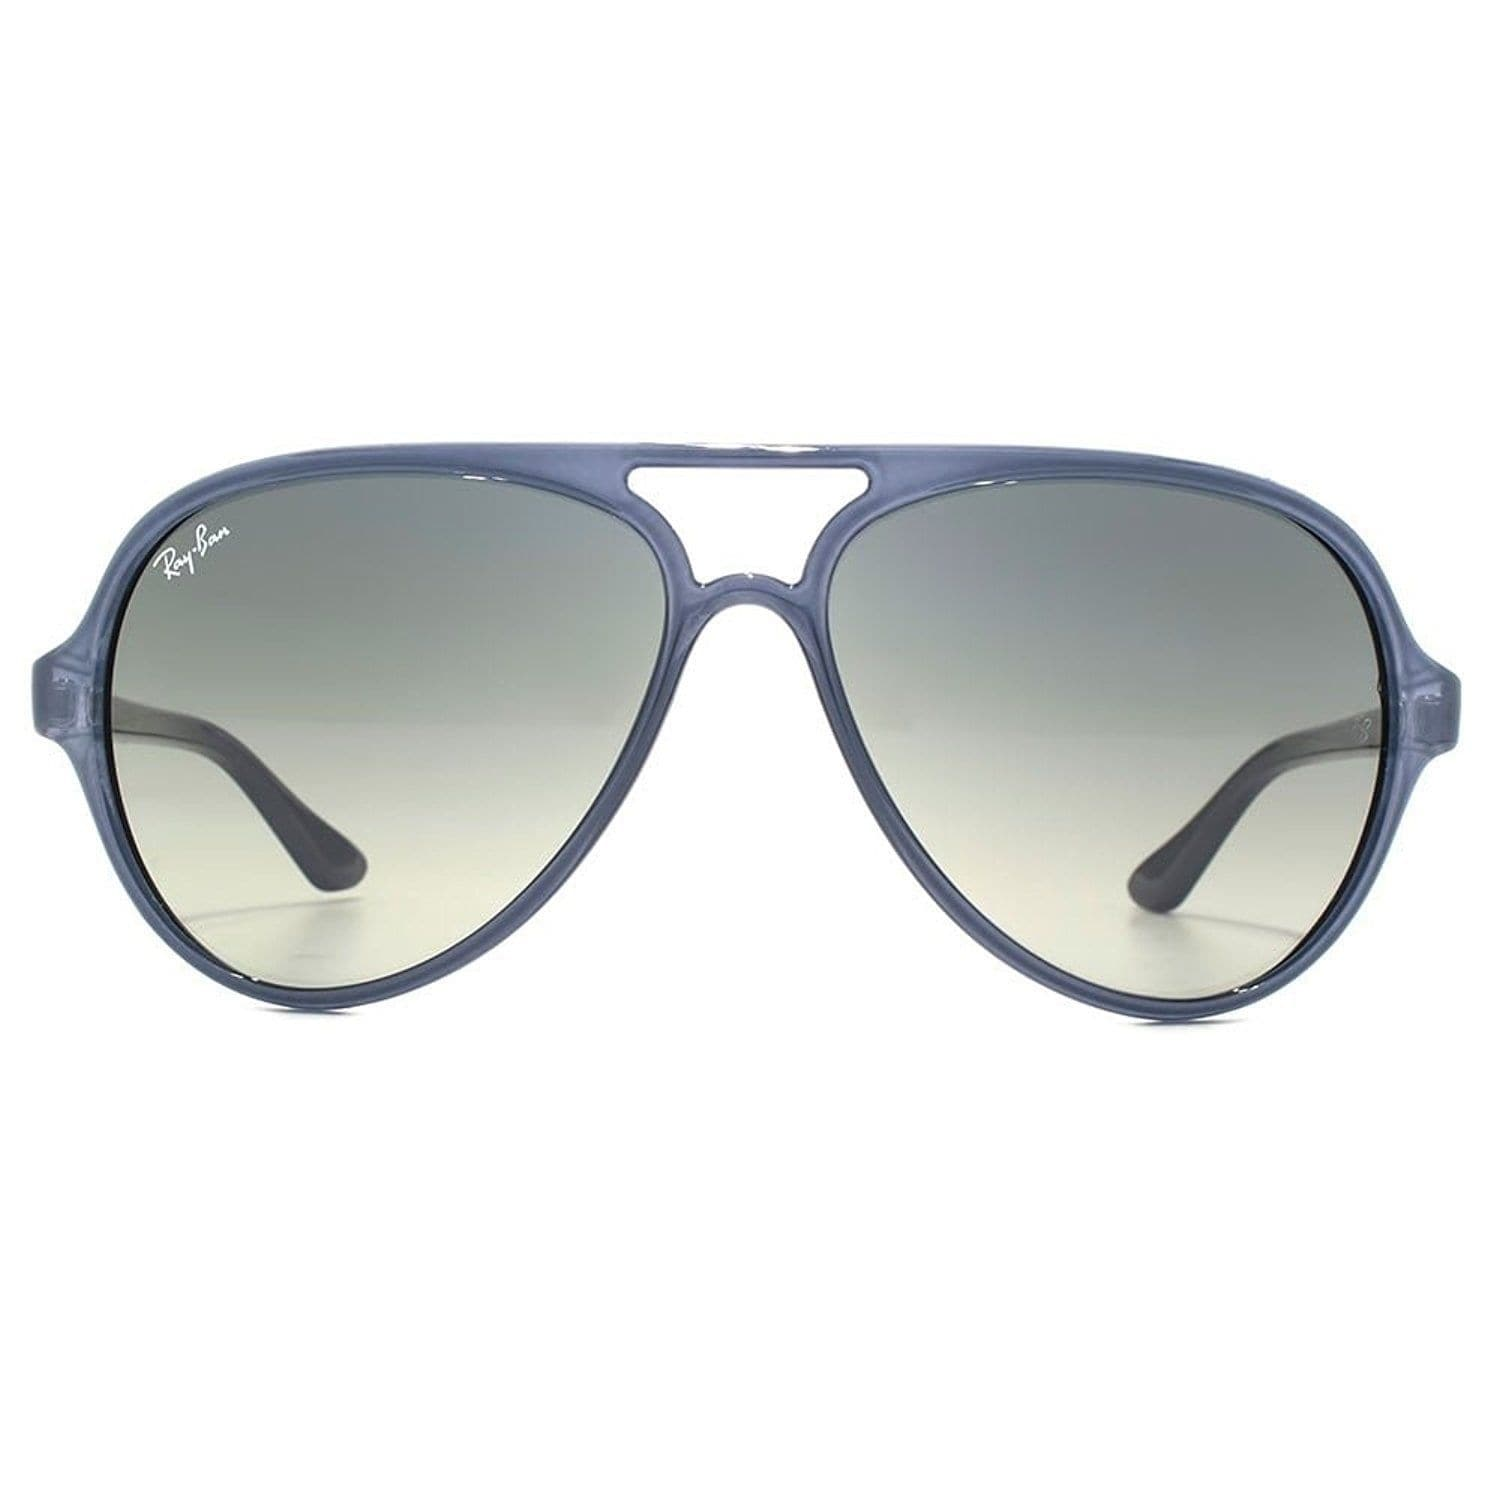 ... italy ray ban unisex rb4125 cats 5000 classic blue frame grey gradient  59mm lens sunglasses free ... b9038294323a